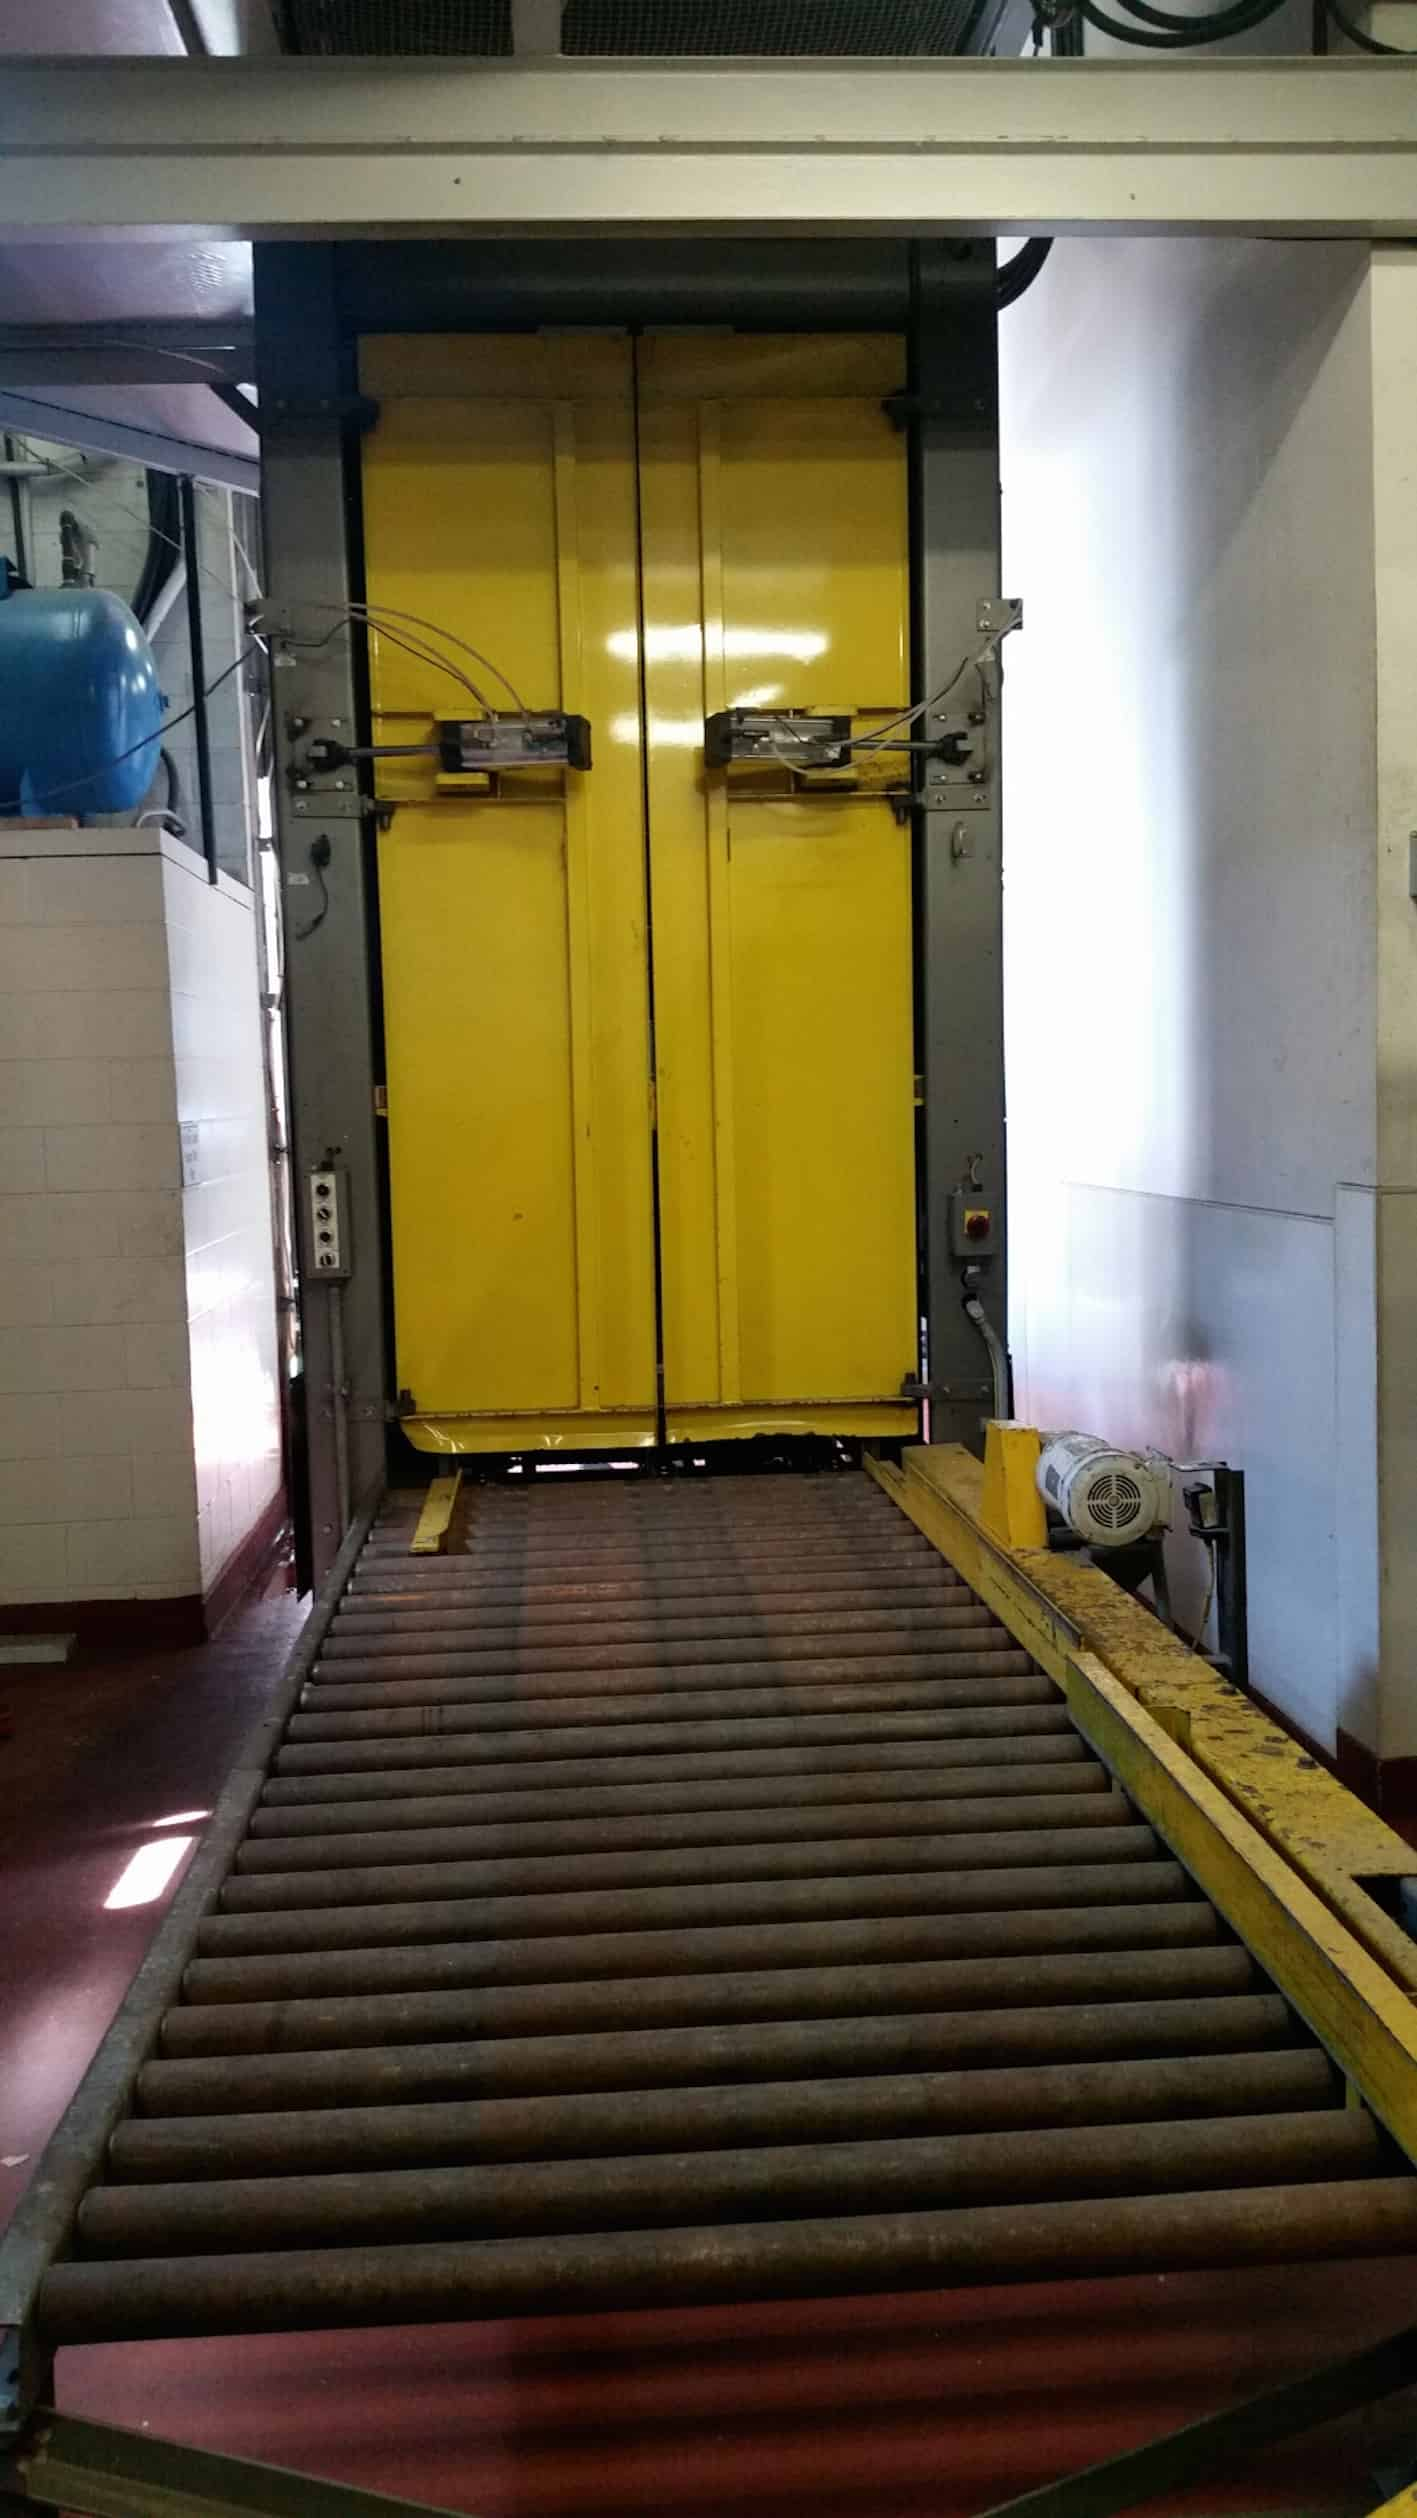 Wyard High-Level Bulk Depalletizer, Model BDA-02, S/N103619, Pallet Stacker, Previously Running 40x48 WCC Pallet, 8' Long Triple-Strand Dual Link Pallet Infeed Conveyor, Operator Station on Right Hand Side With Respect to Bottle Flow, Allen-Bradley SLC 5/04 Processor, (8) 160 VFDs, Panelview 1000 at Platform and (2) Yaskawa GPD 315 VFD